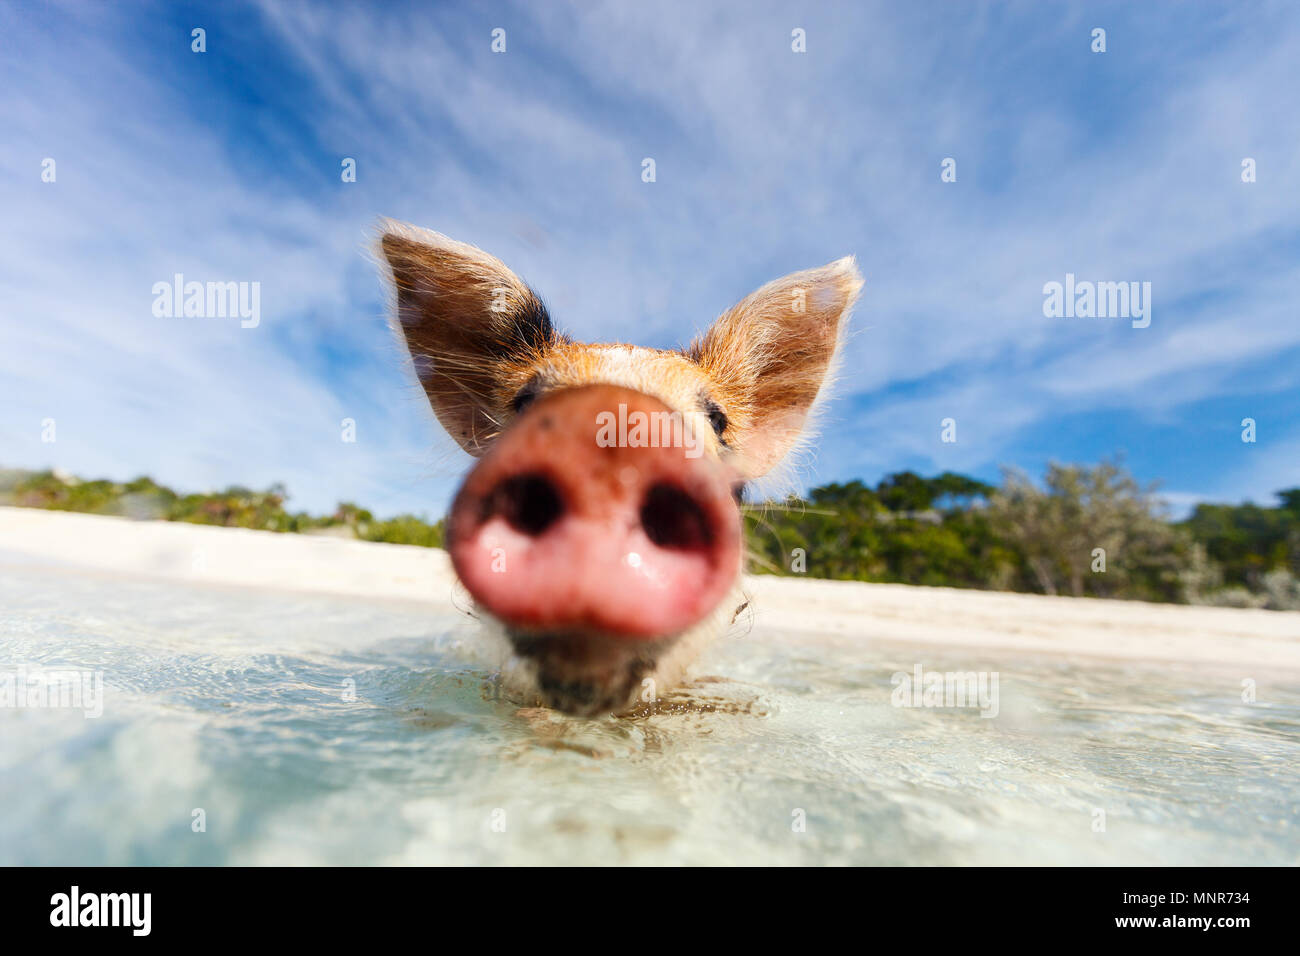 Little piglet in a water at beach on Exuma Bahamas - Stock Image